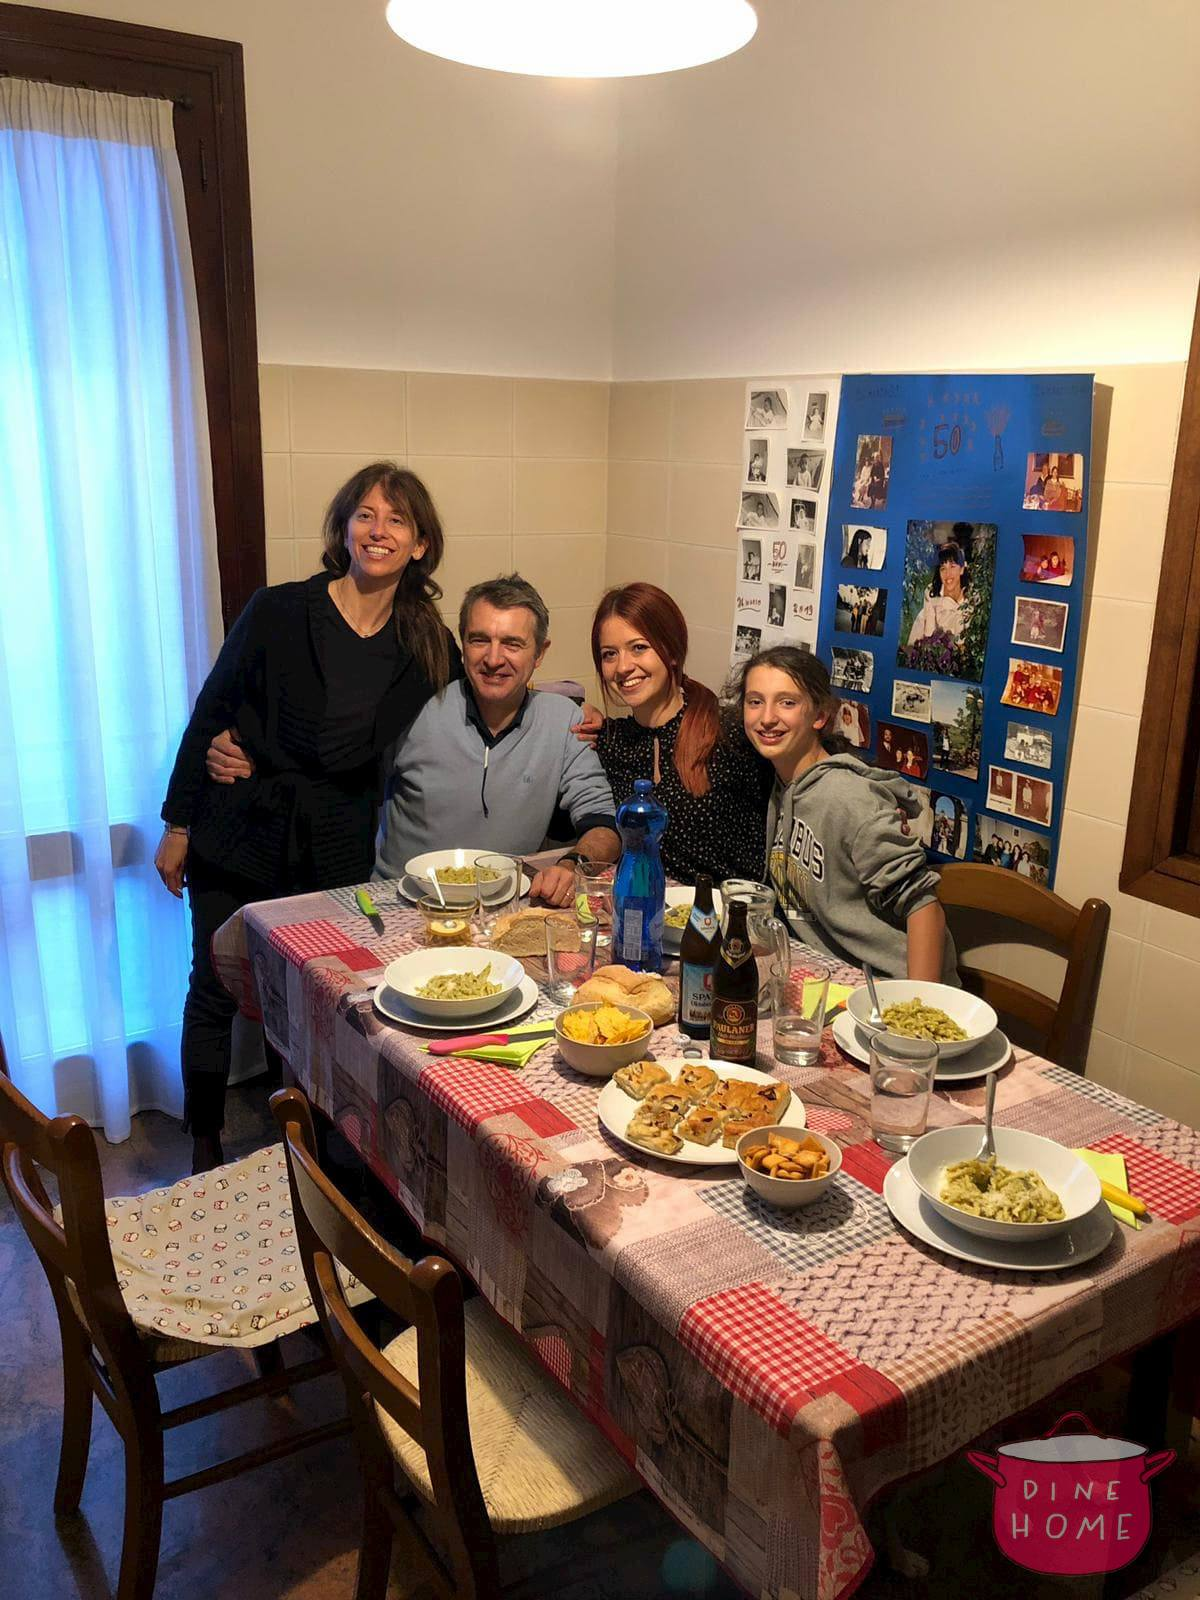 Ana Marija, a student from Croatia, over dinner with her Dinehome family.